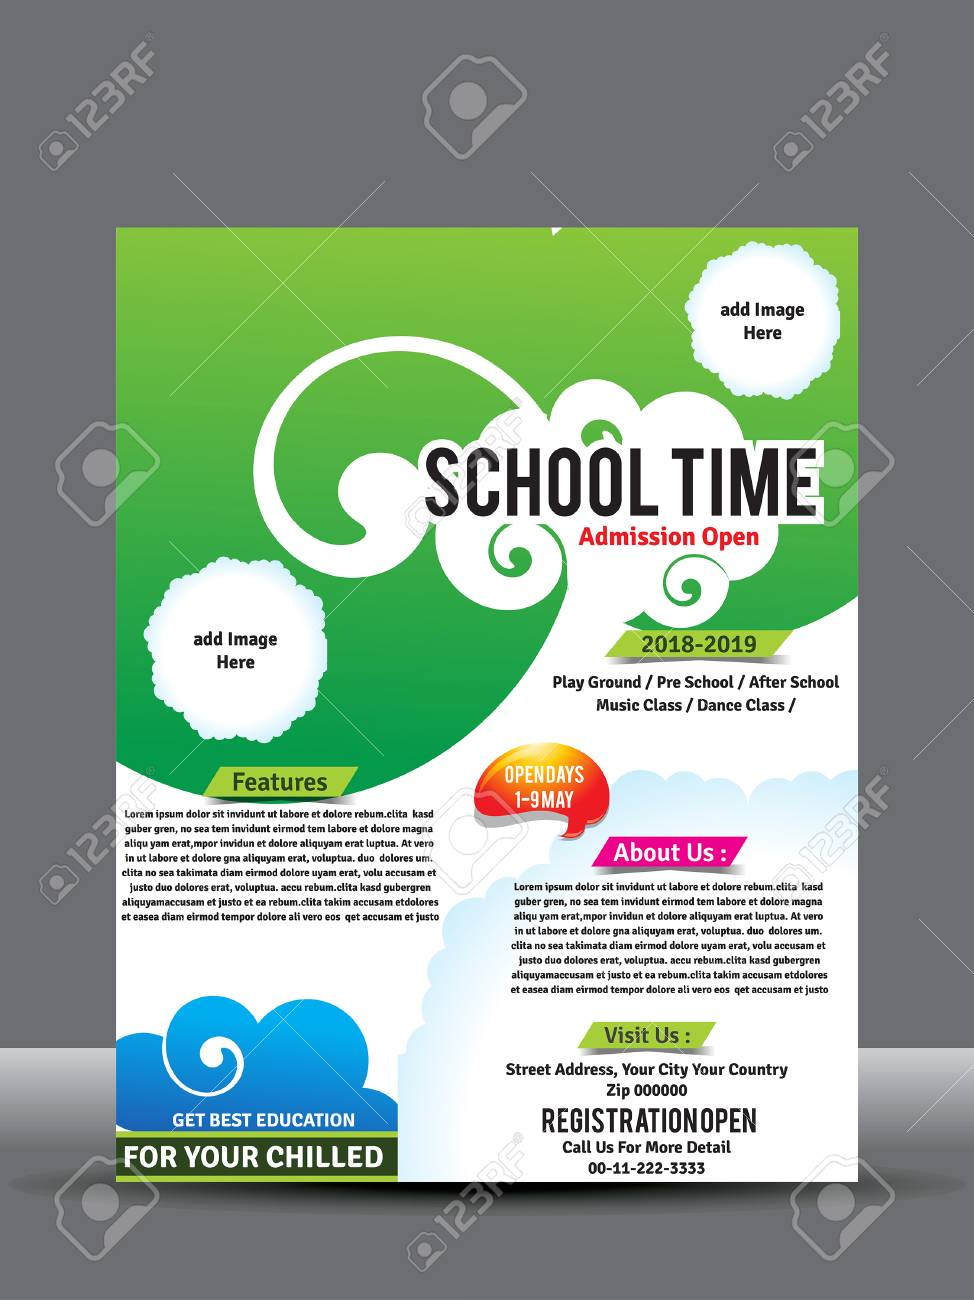 School Project Poster Design Ideas School Or Collage Flyer Or Poster Design Template Vector Illustration